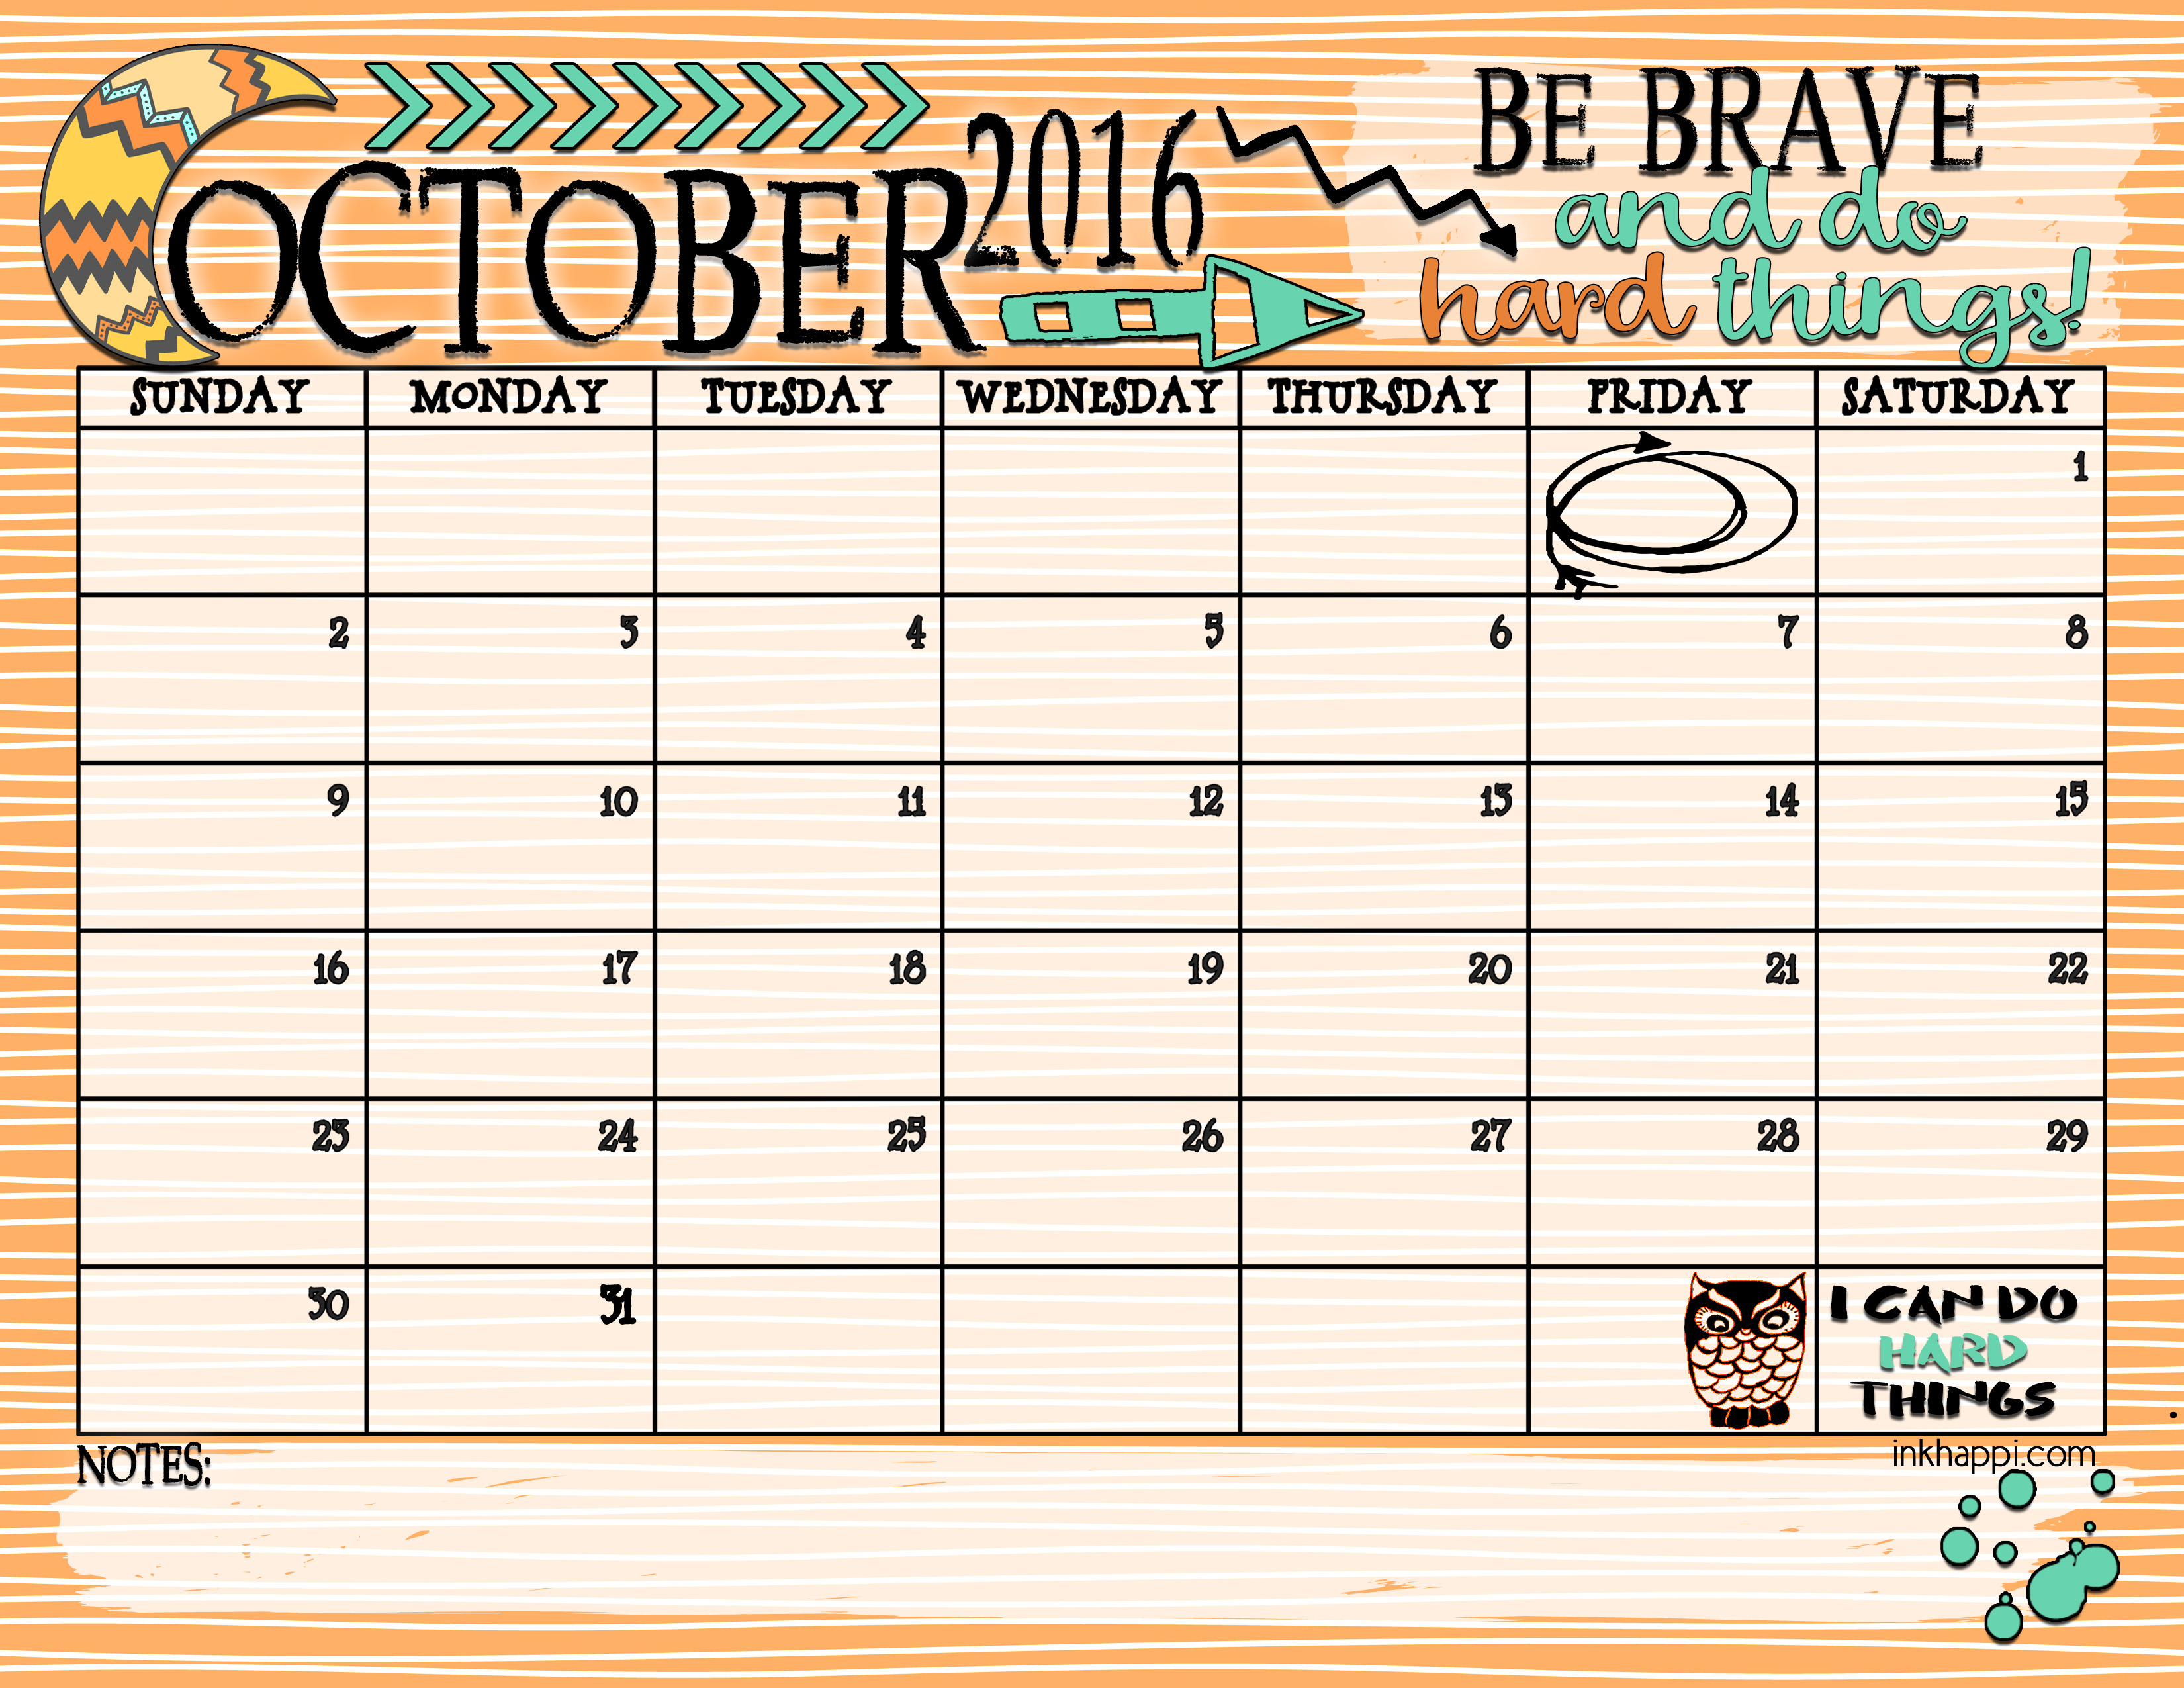 here is the october 2016 calendar